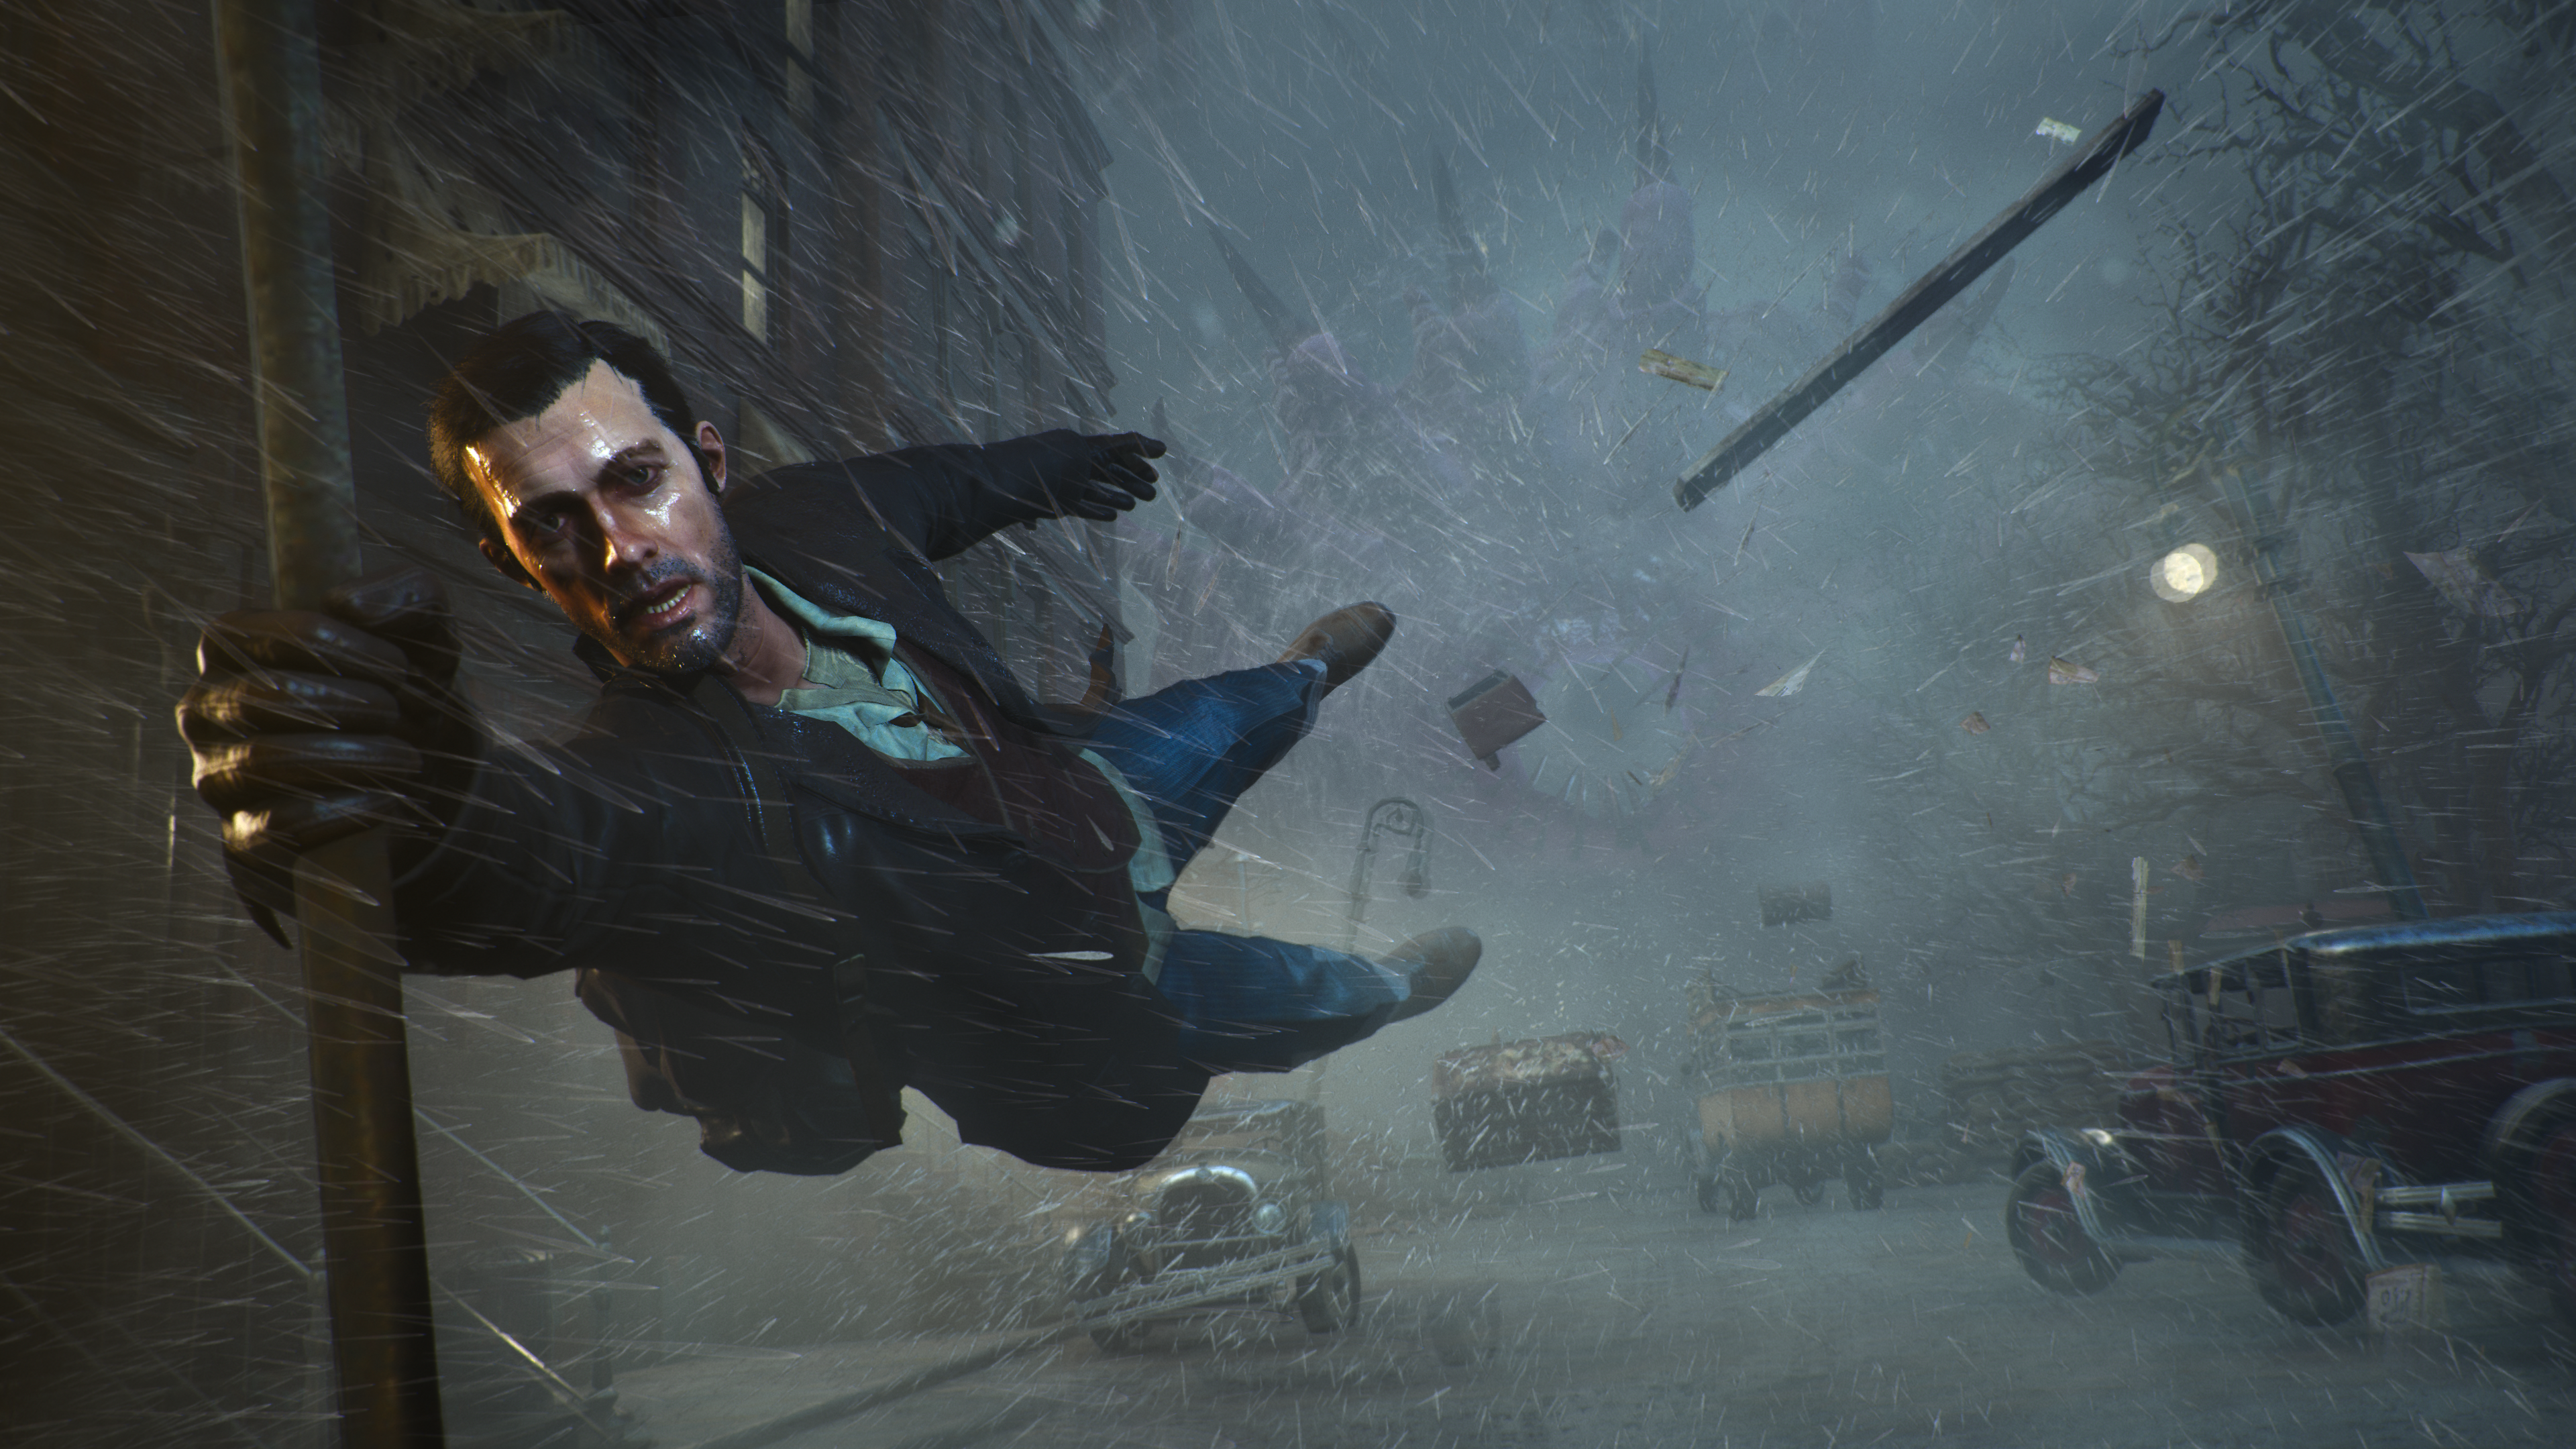 BigBen Interactive, Frogwares Games, PC, Preview, PS4, The Sinking City, Xbox OneBigBen Interactive, Frogwares Games, PC, Preview, PS4, The Sinking City, Xbox One